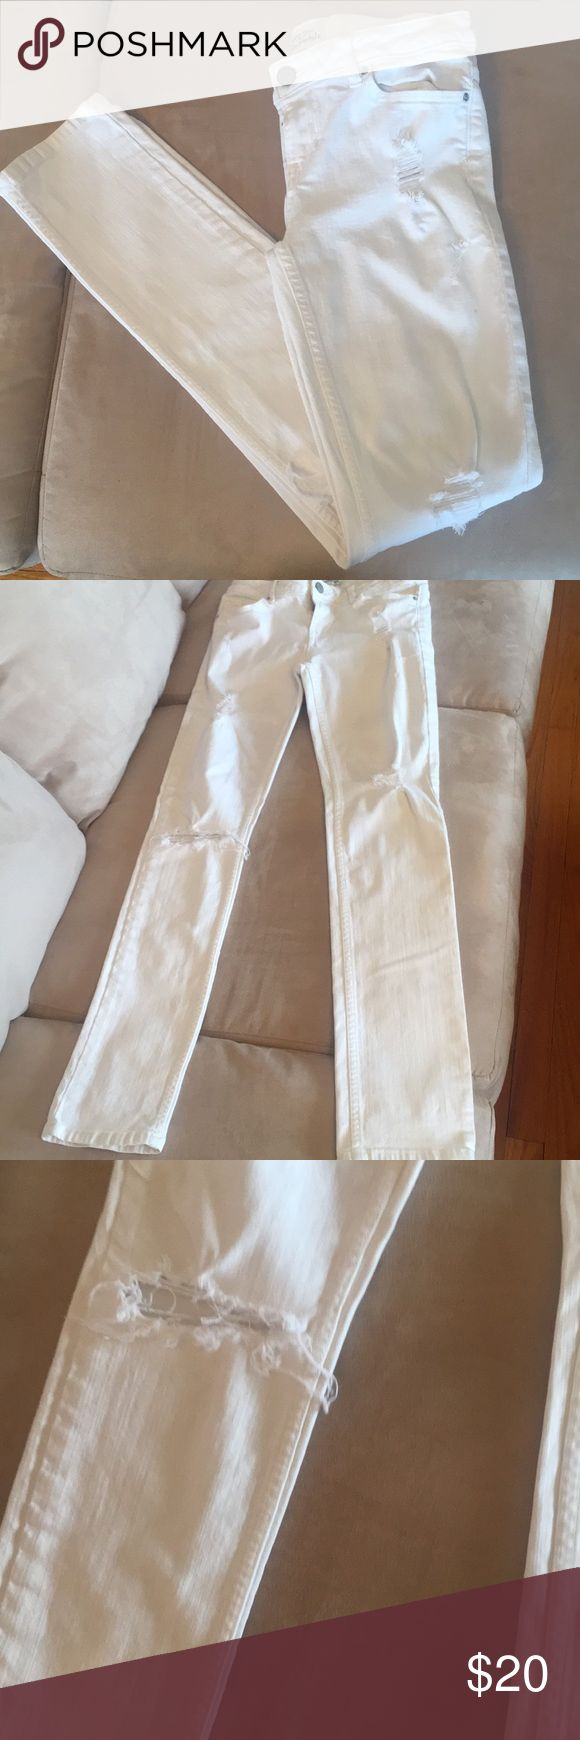 Aeropostale White Jeans Aeropostale Bayla Skinny jean in white. Size 5/6 regular. Used, and in good condition. On left leg there is a small spot (shown in pictures). 98% cotton, 2% spandex. Aeropostale Jeans Skinny